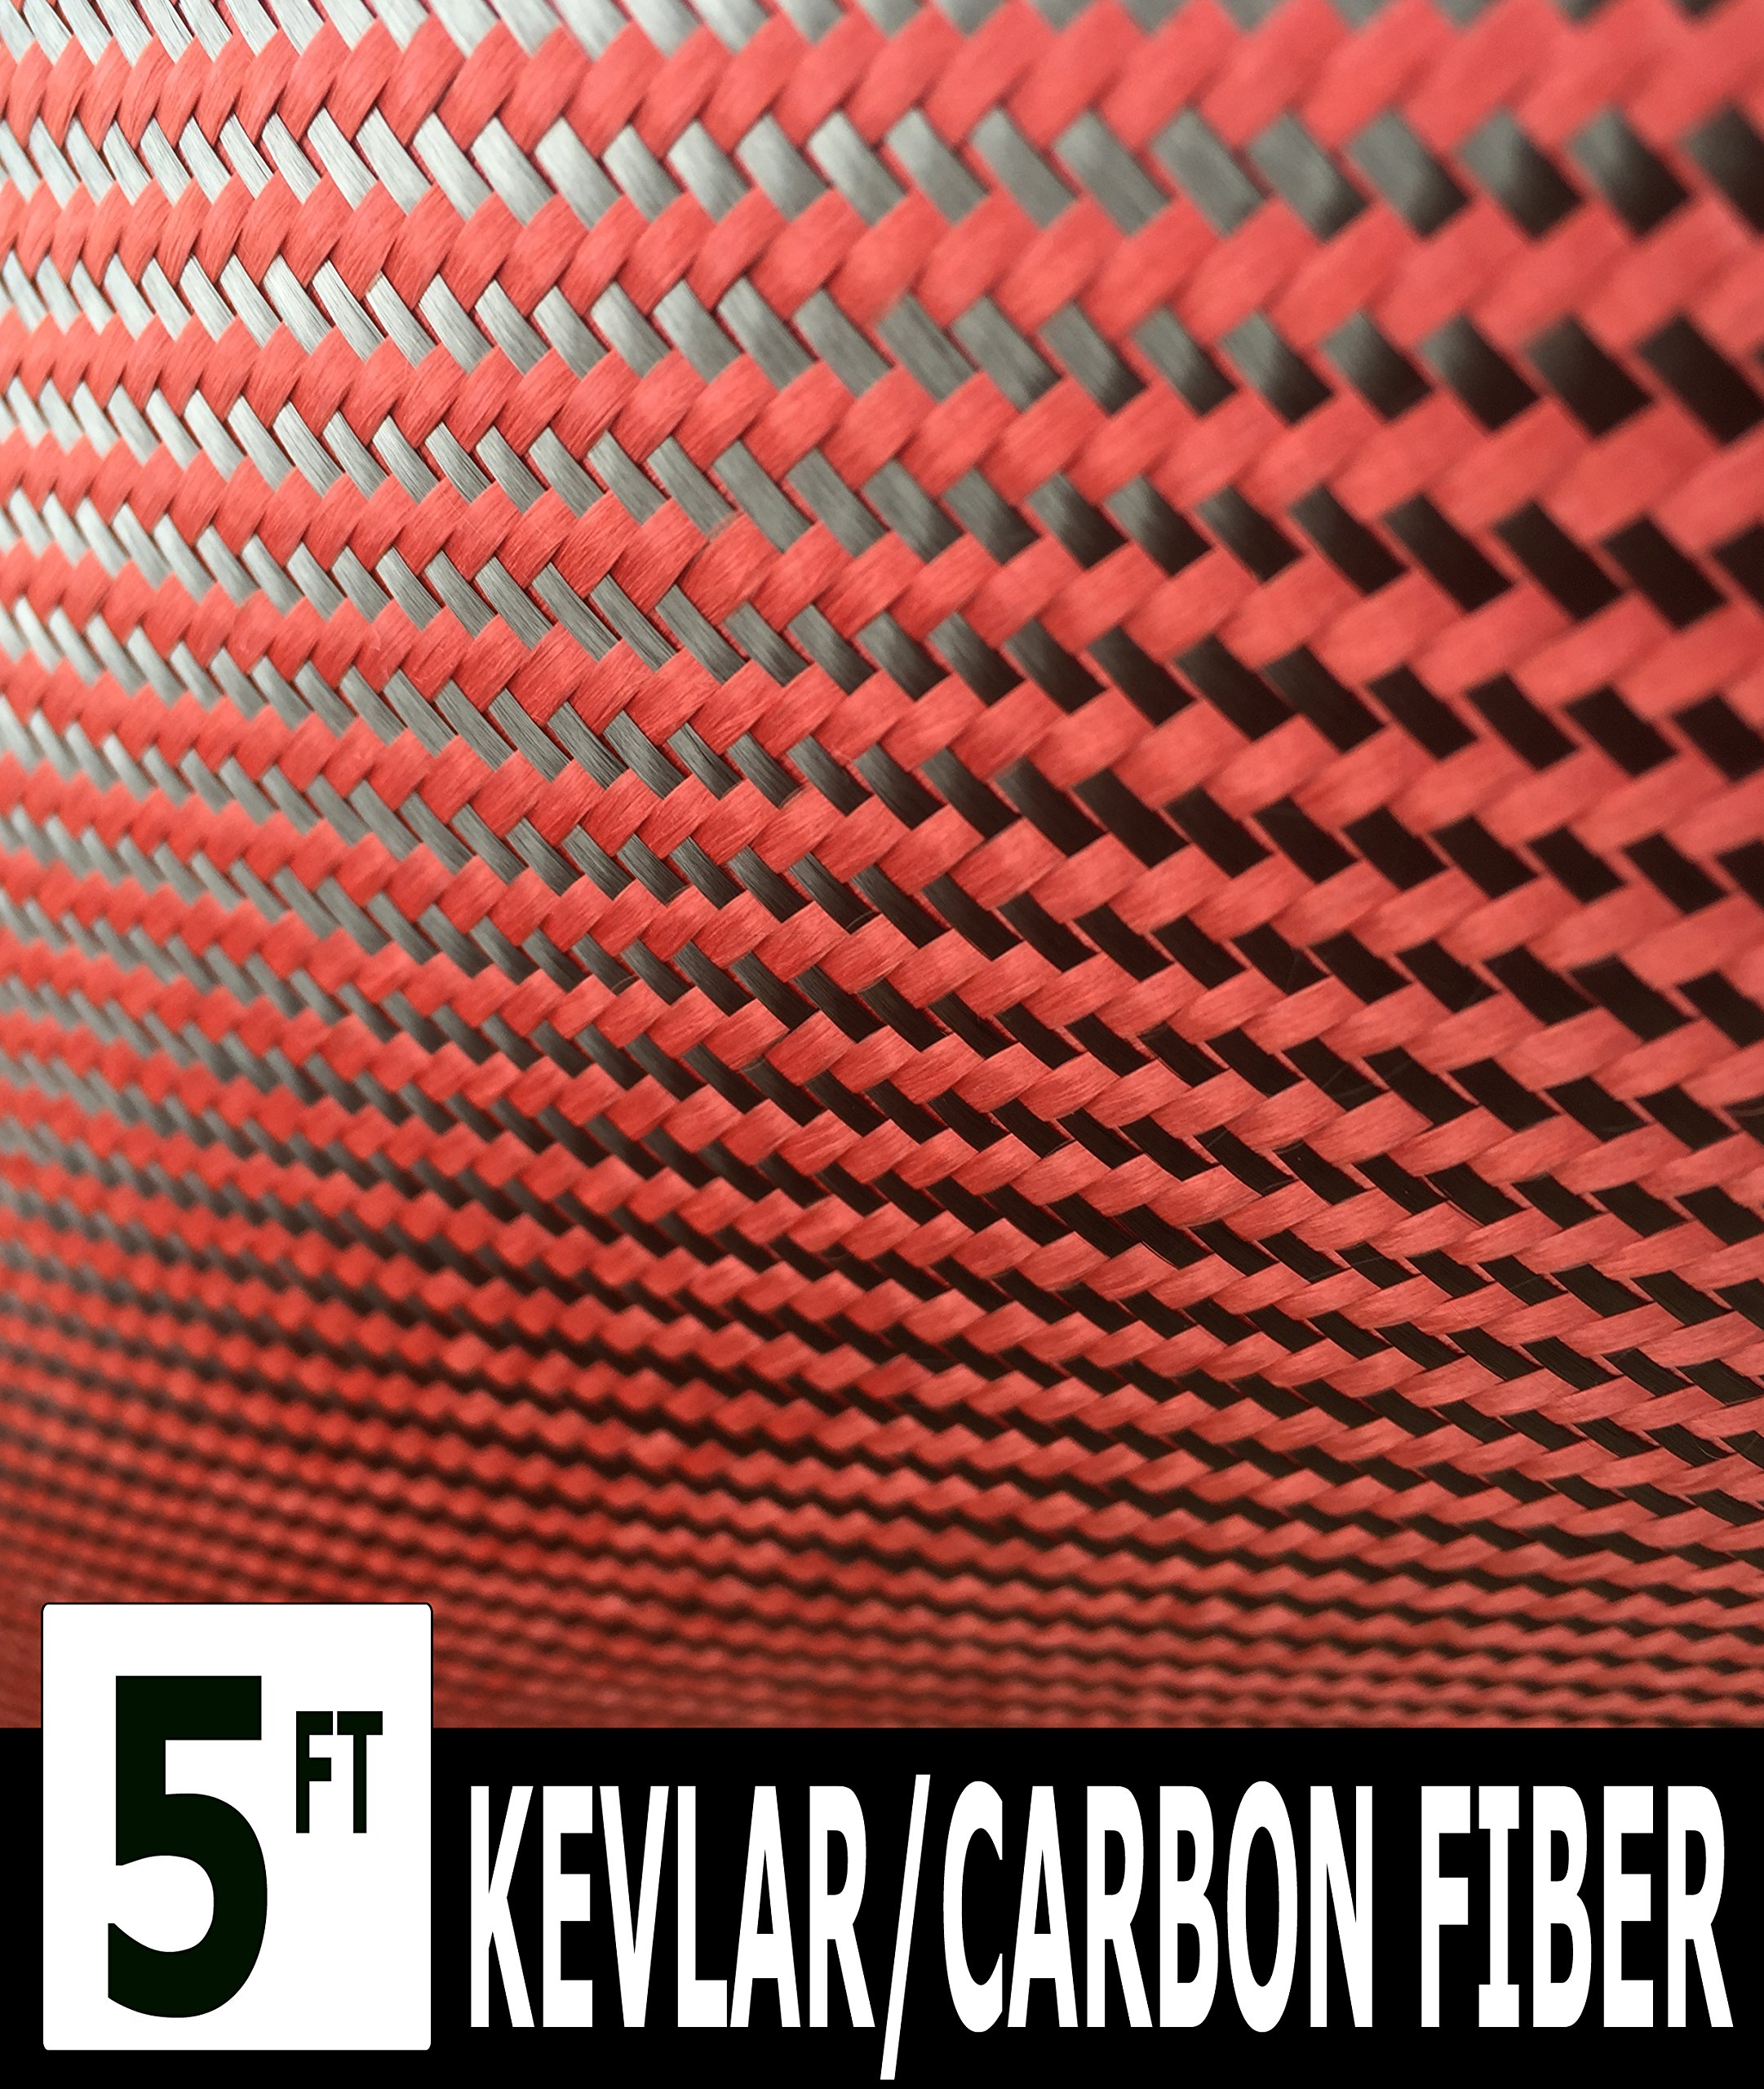 Kevlar (Red - 5 Ft x 1Mtr) Carbon Fiber Fabric-Twill WEAVE-3K/200g by Unknown